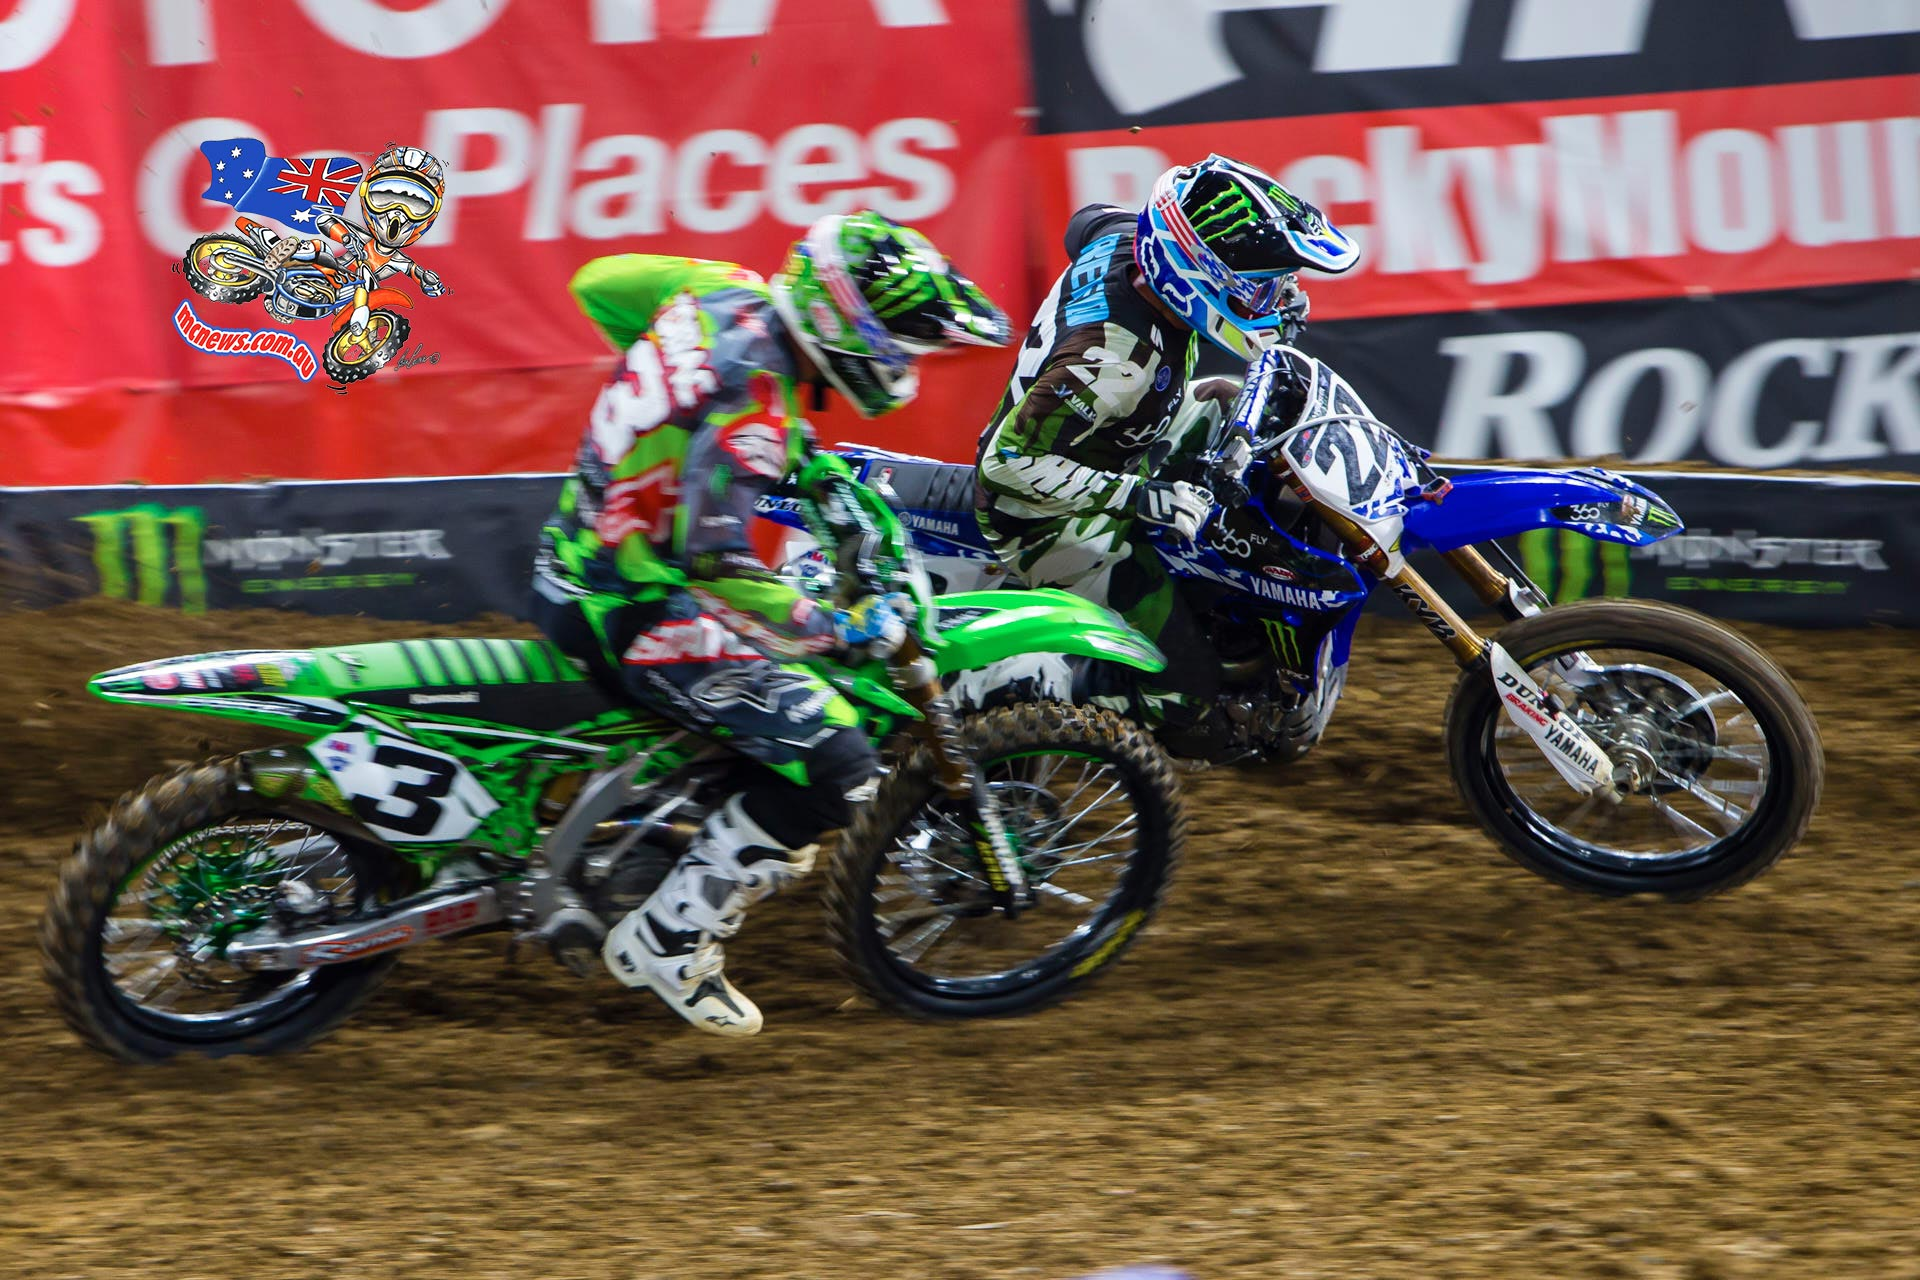 Eli Tomac and Chad Reed do battle - Image by Hoppenworld